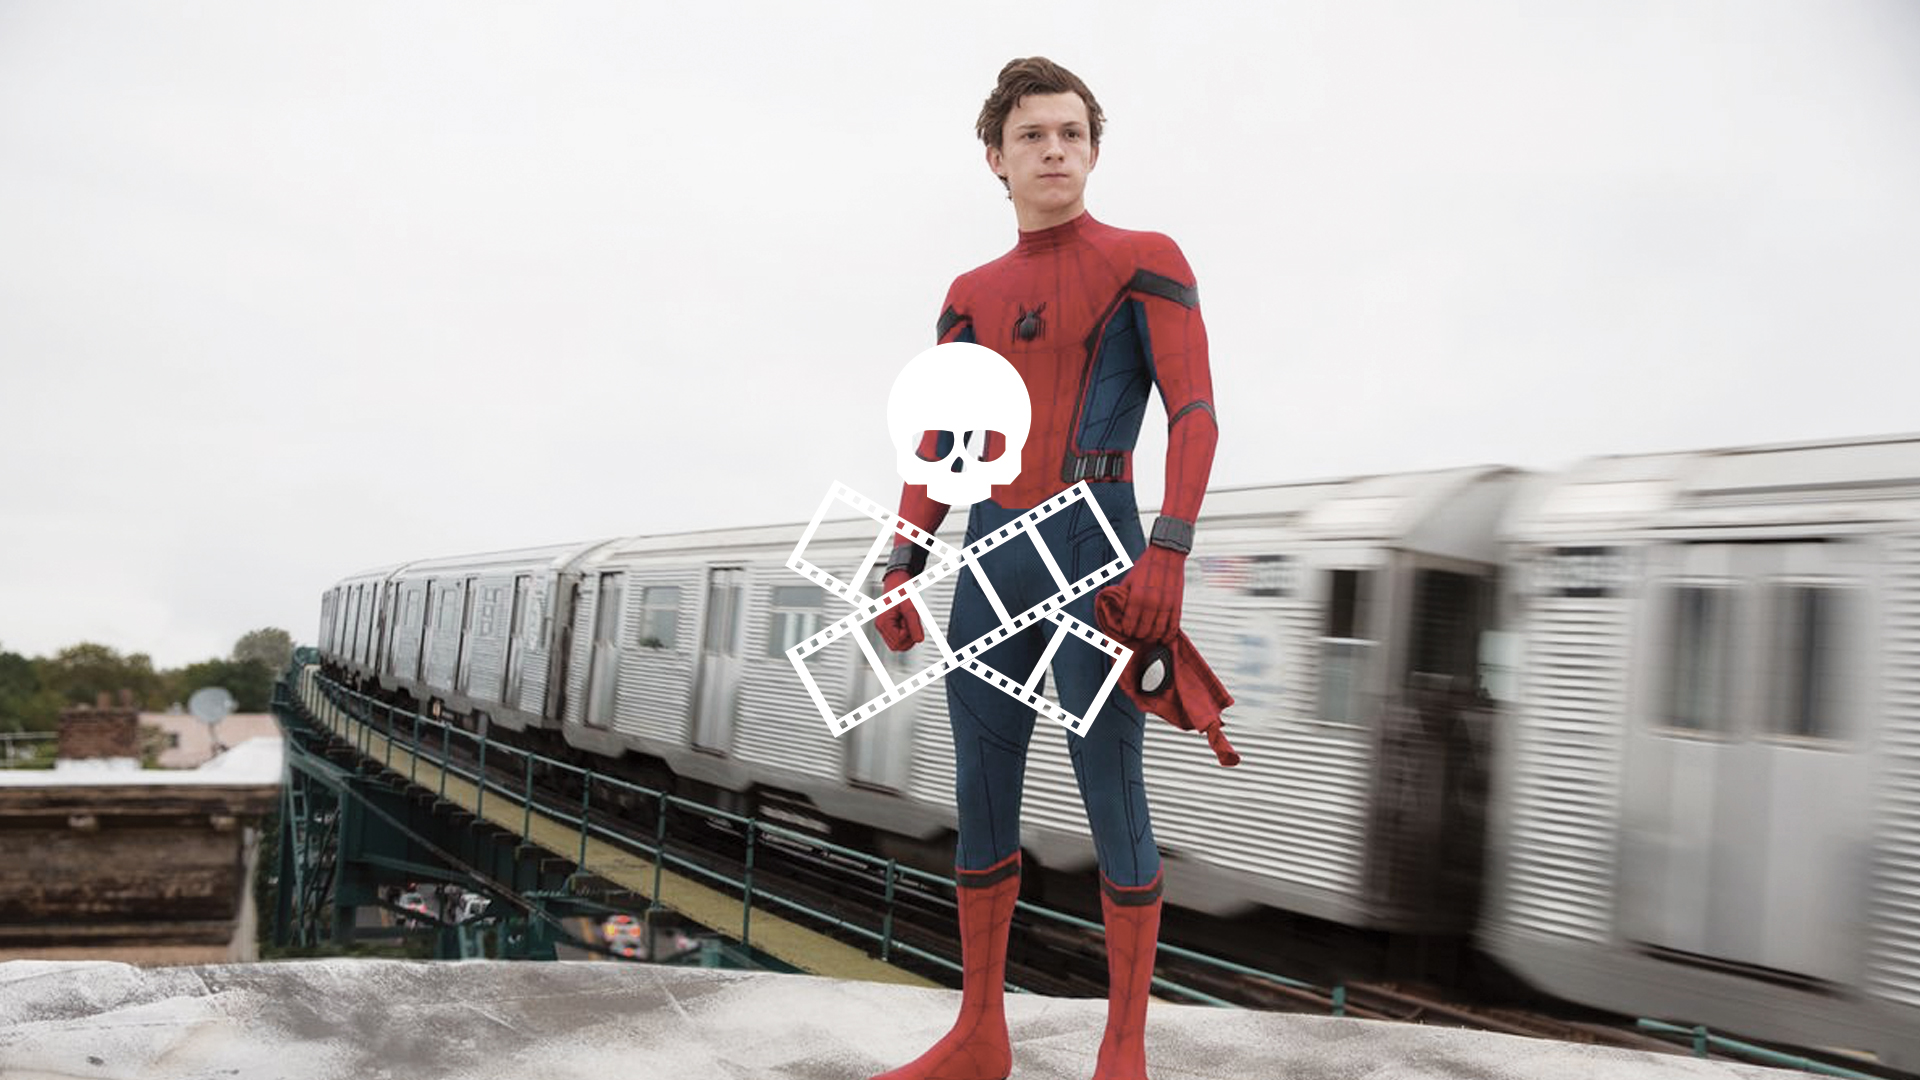 108. Spider-Man: Homecoming